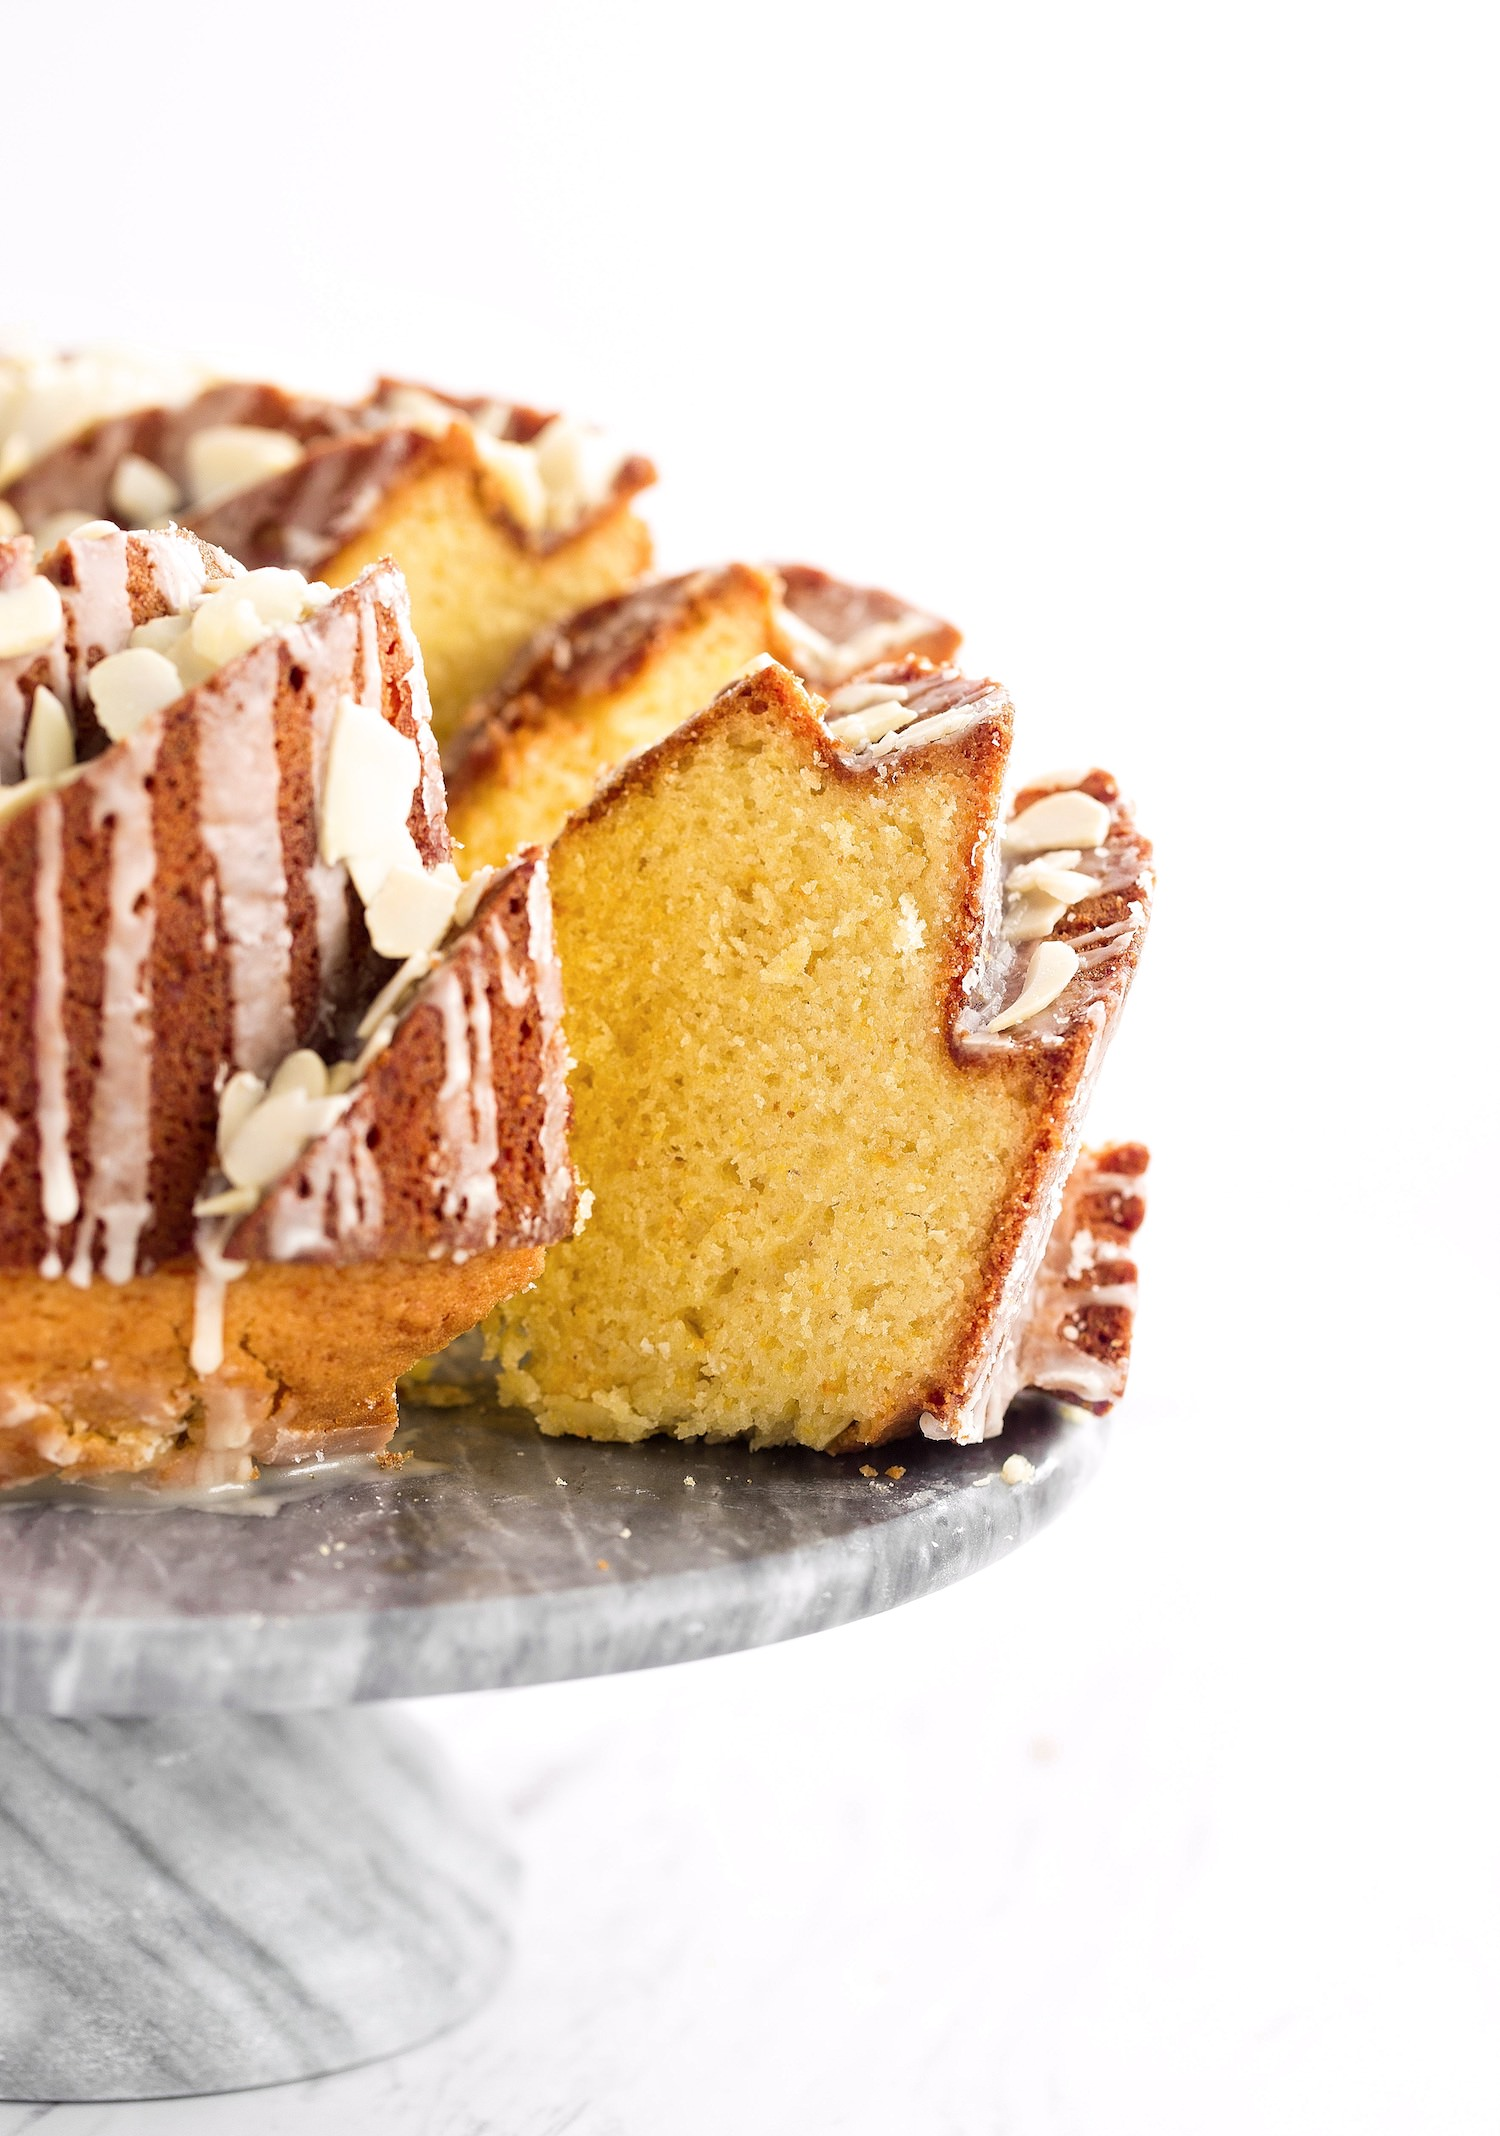 Glazed Orange Almond Bundt Cake: easy, moist, fluffy, and packed with flavor from orange zest, freshly squeezed orange juice, almond extract, and an orange glaze and sliced almond garnish. | TrufflesandTrends.com